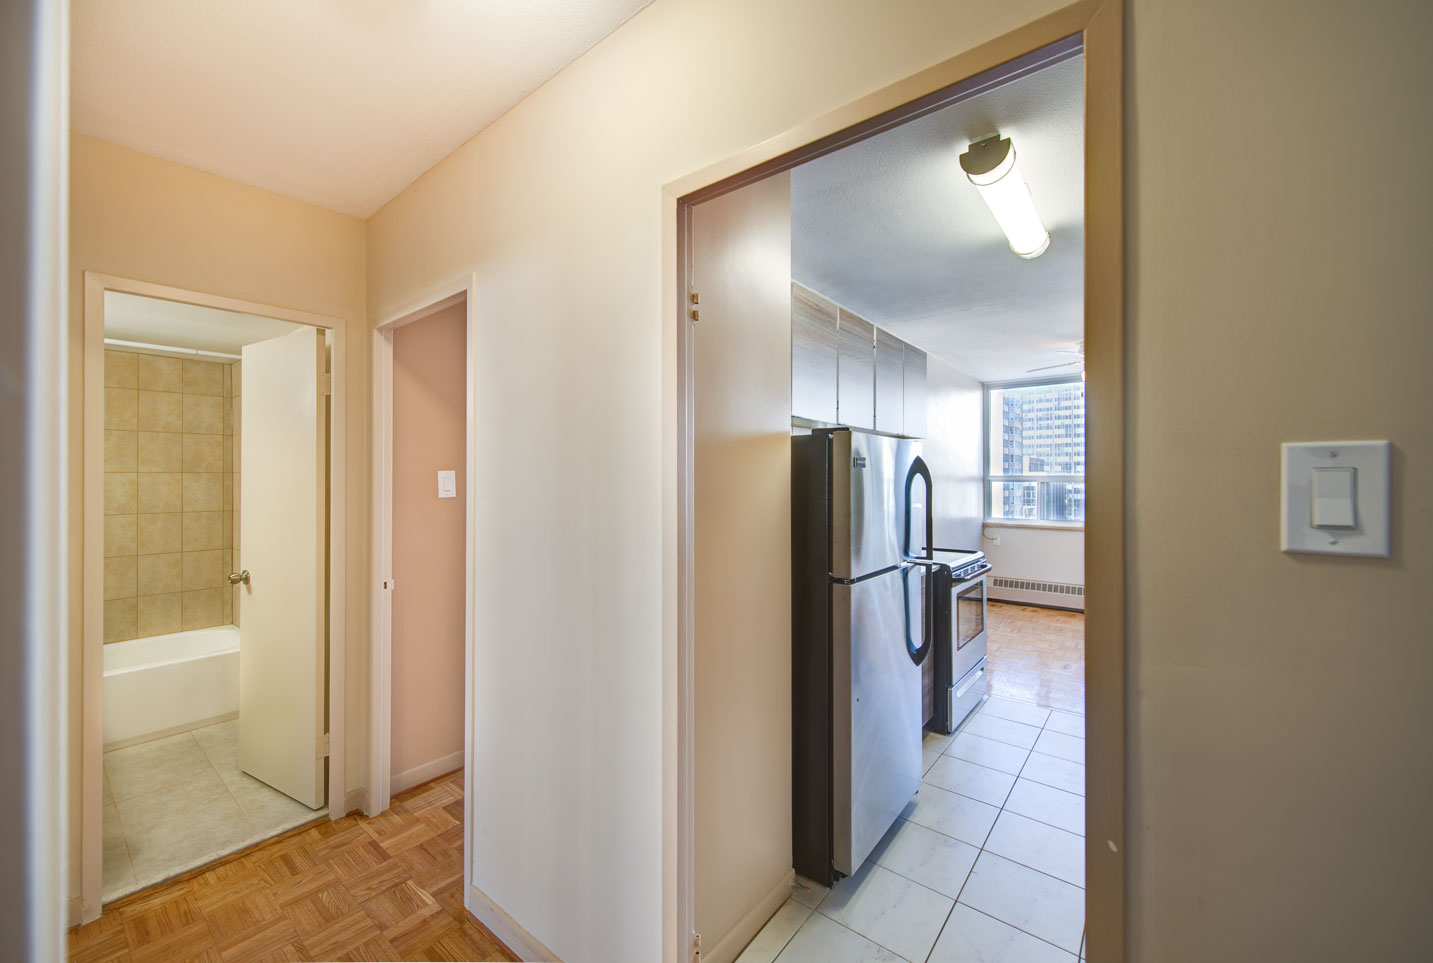 Bachelor Apartments For Rent Yonge And Eglinton